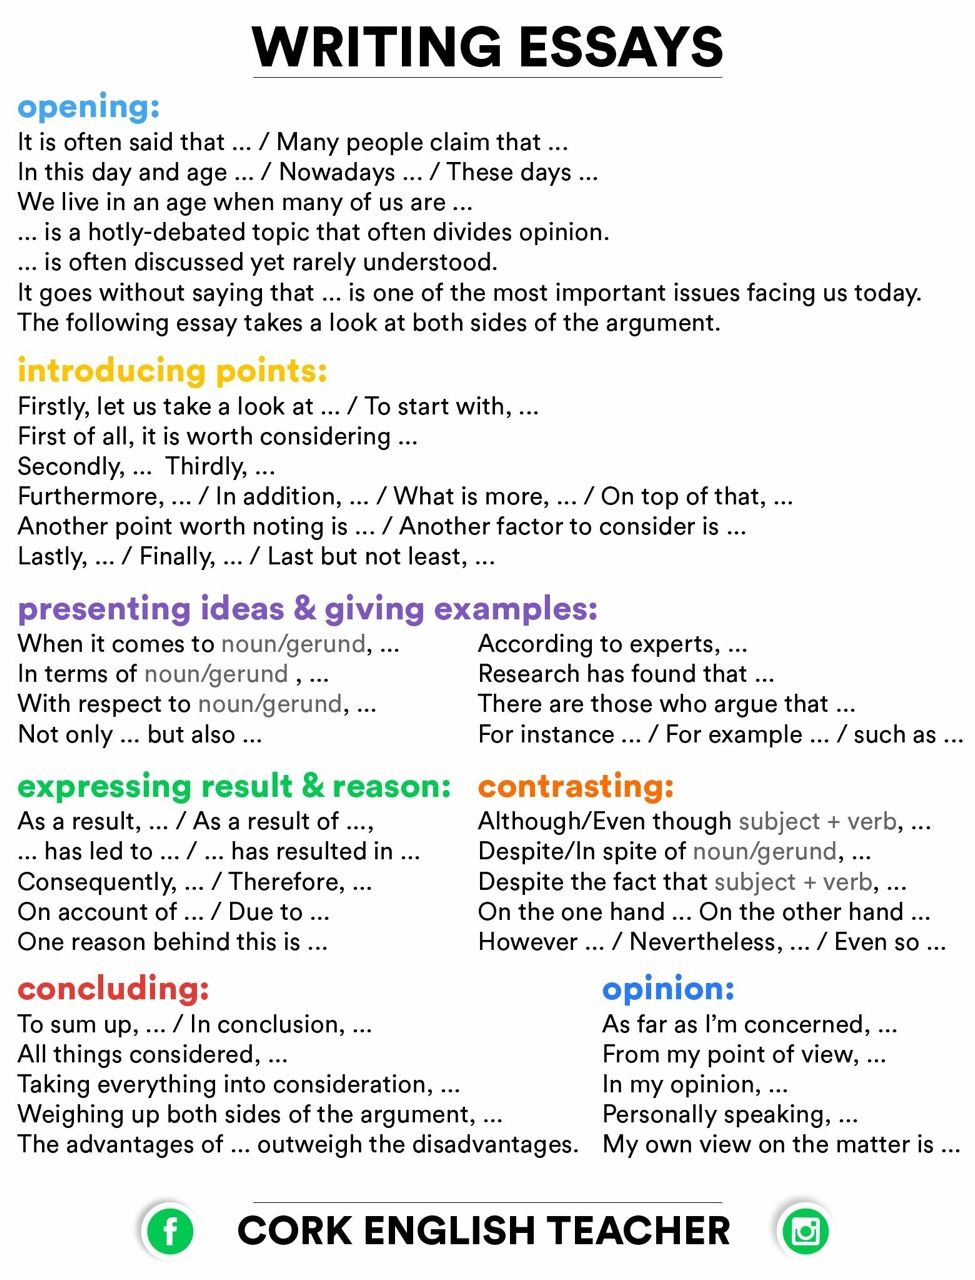 Attirant Hellolearnenglishwithantriparto: U201c Phrases For Essay Writing #learnenglish  U201d. English ClassHow To ...